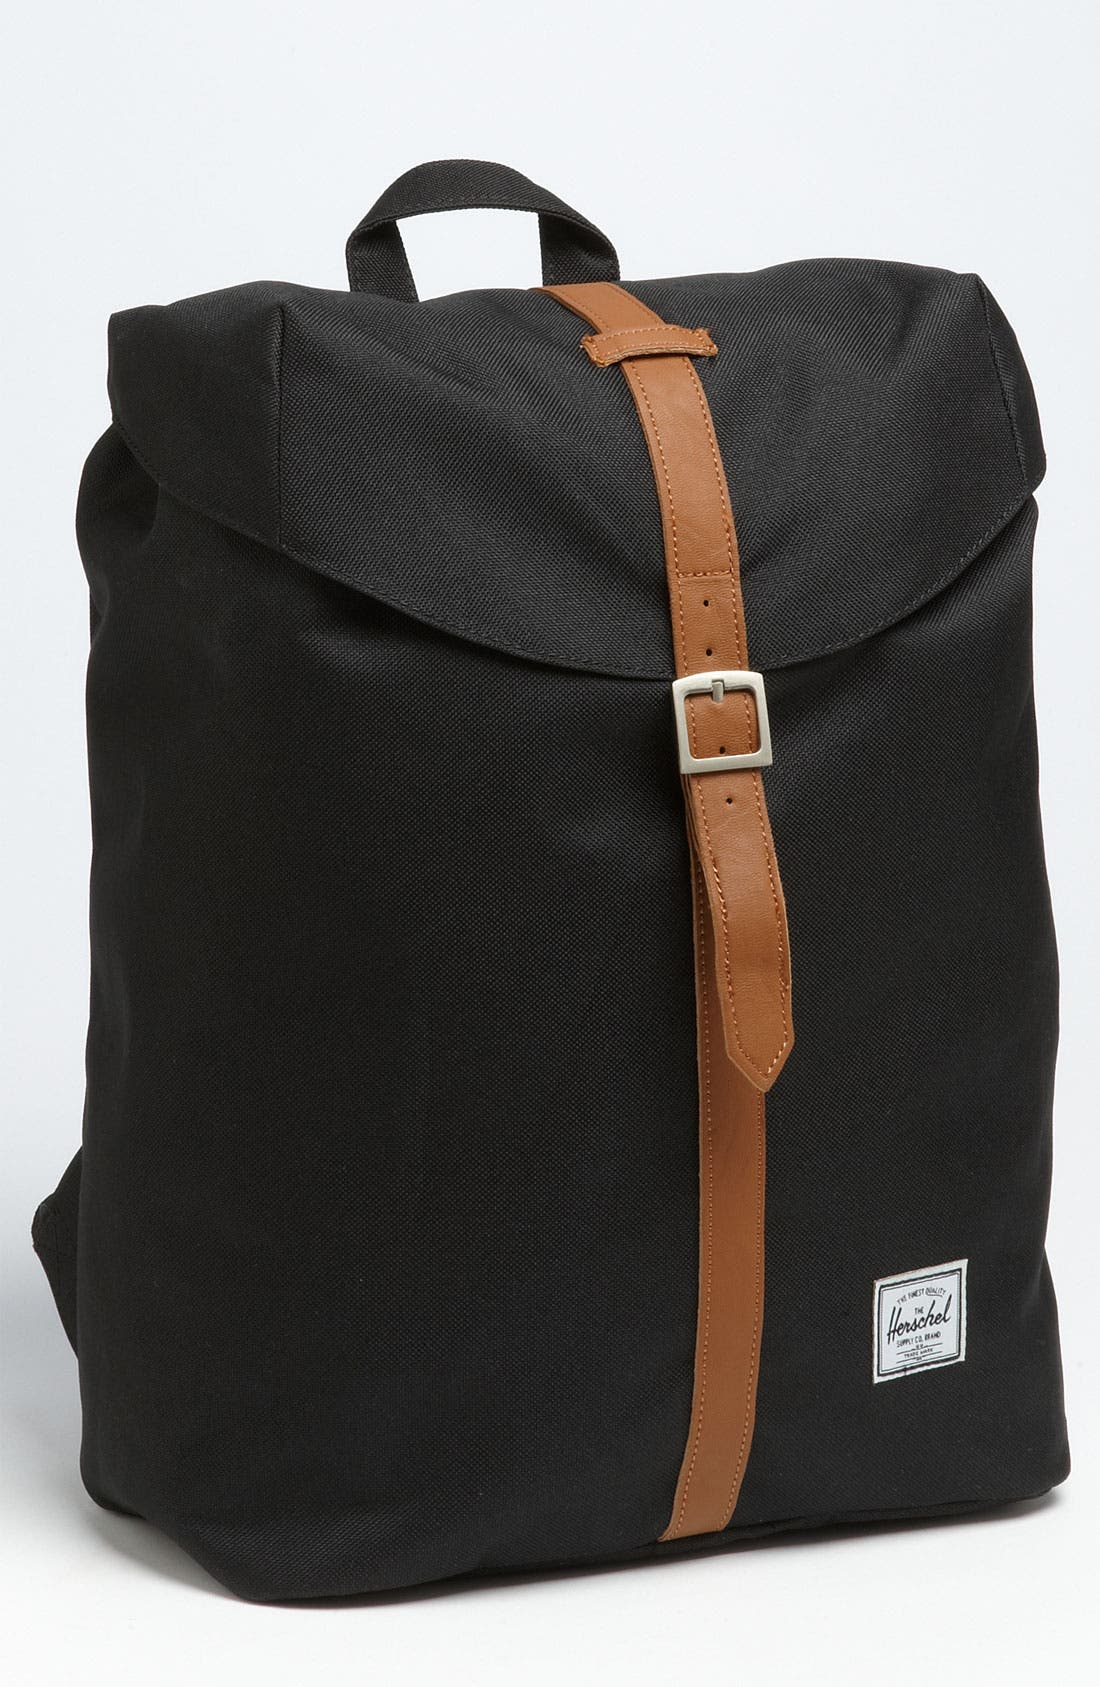 Main Image - Herschel Supply Co 'Post' Backpack